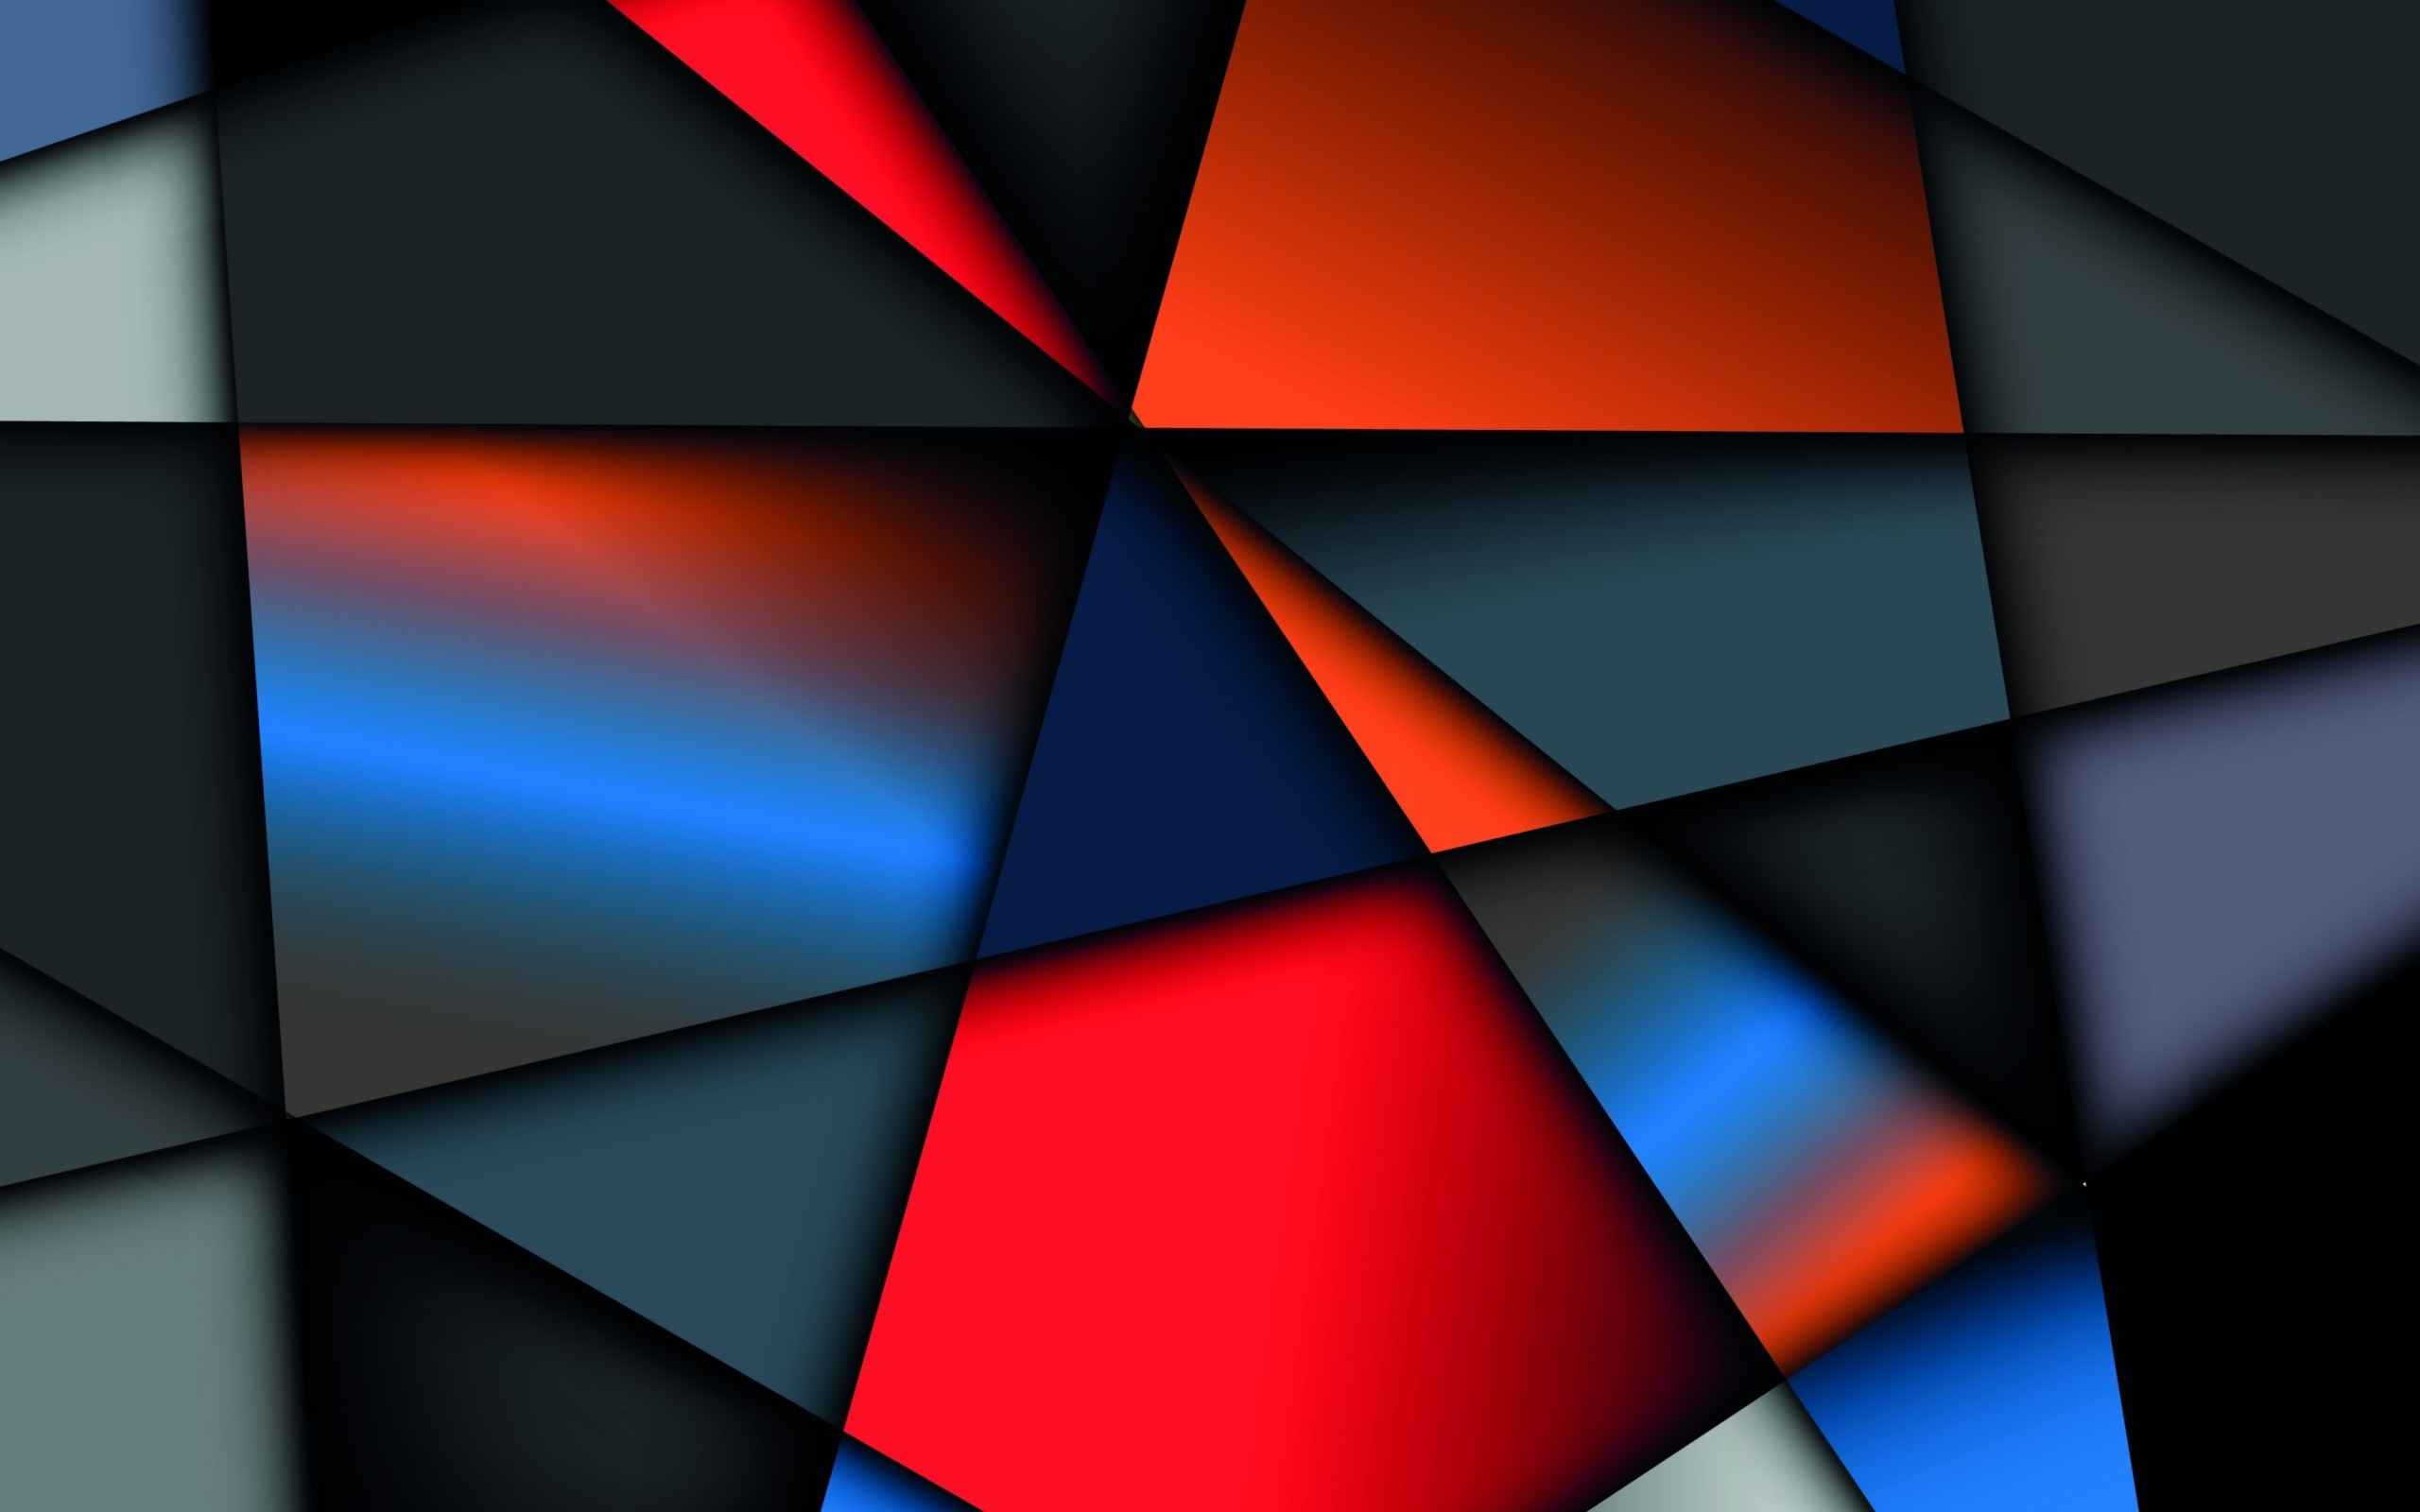 4k abstract wallpaper background 62800